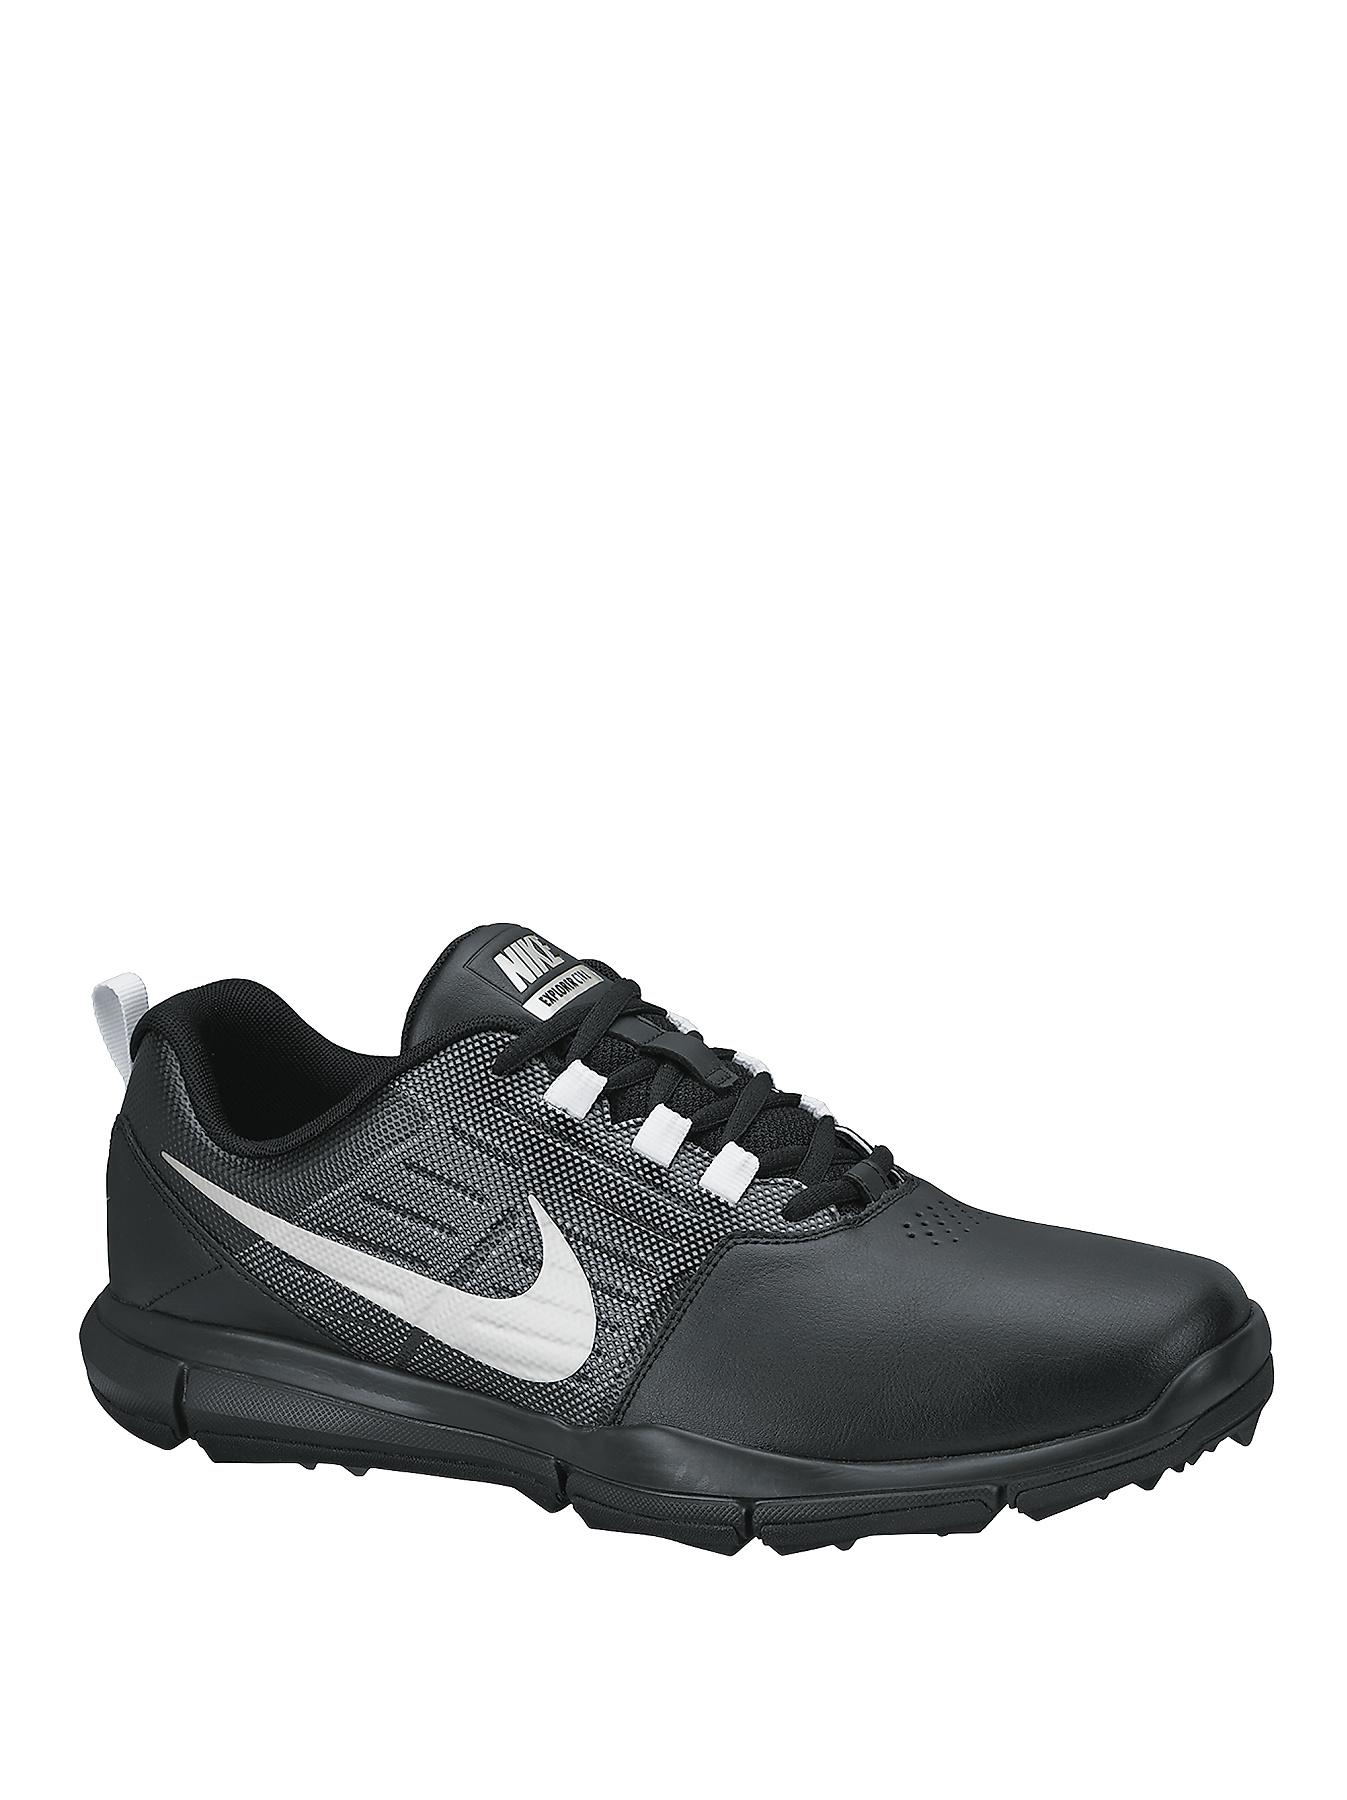 Nike Explorer Golf Shoes - Black/Silver/Cool Grey - Black, Black